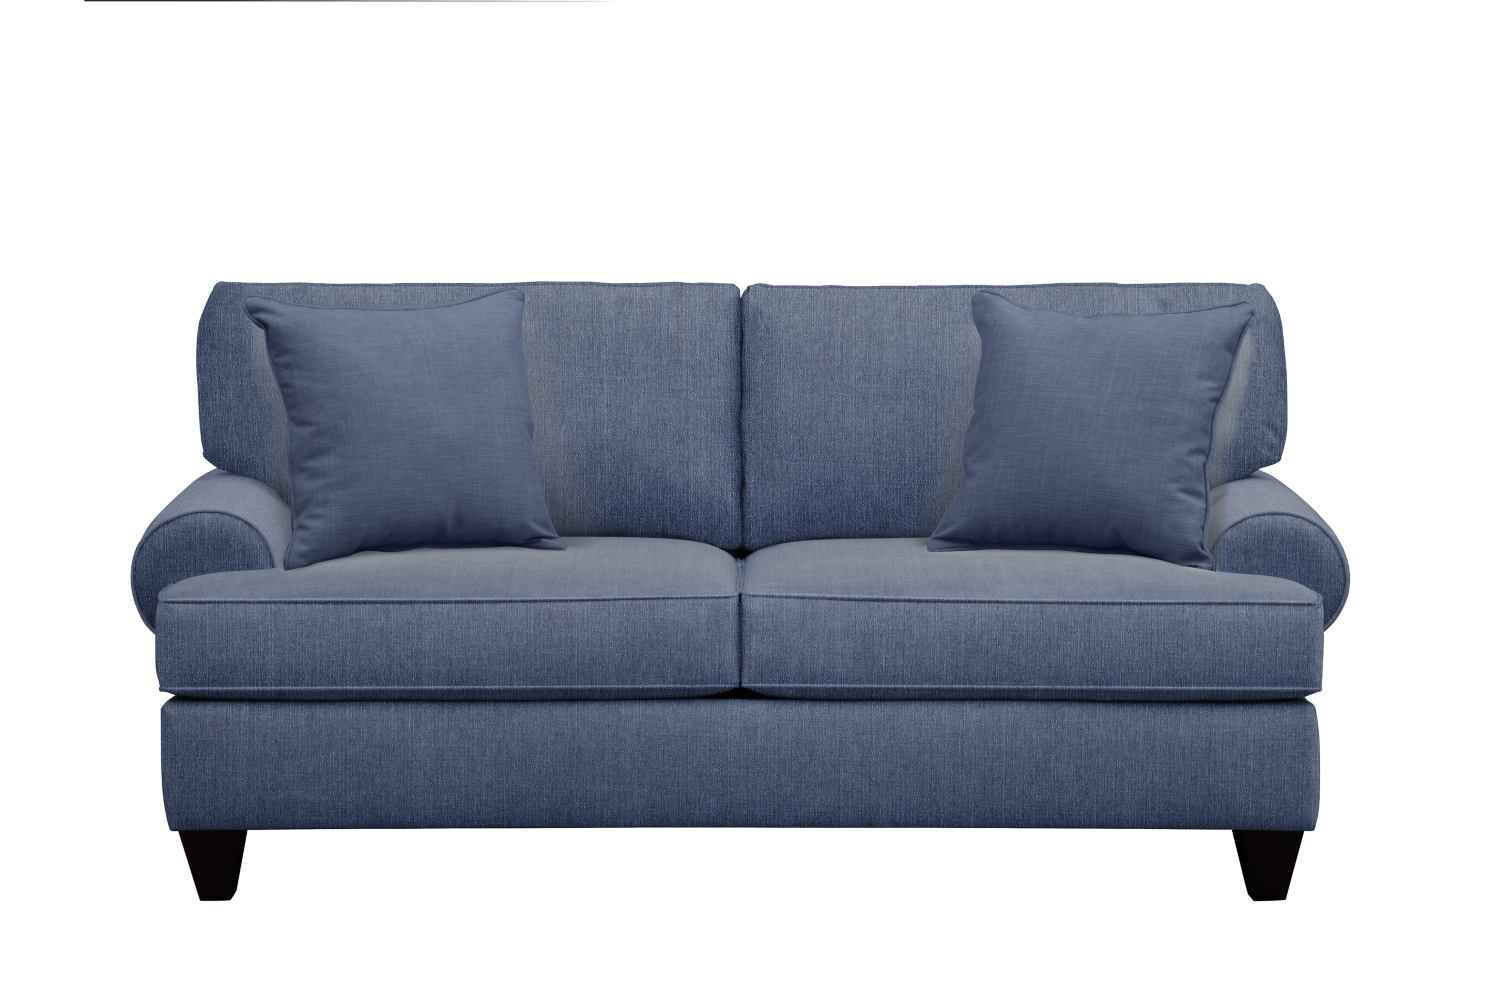 "Living Room Furniture - Bailey Roll Arm Sofa 79"" Depalma Ink w/ Depalma Ink Pillow"